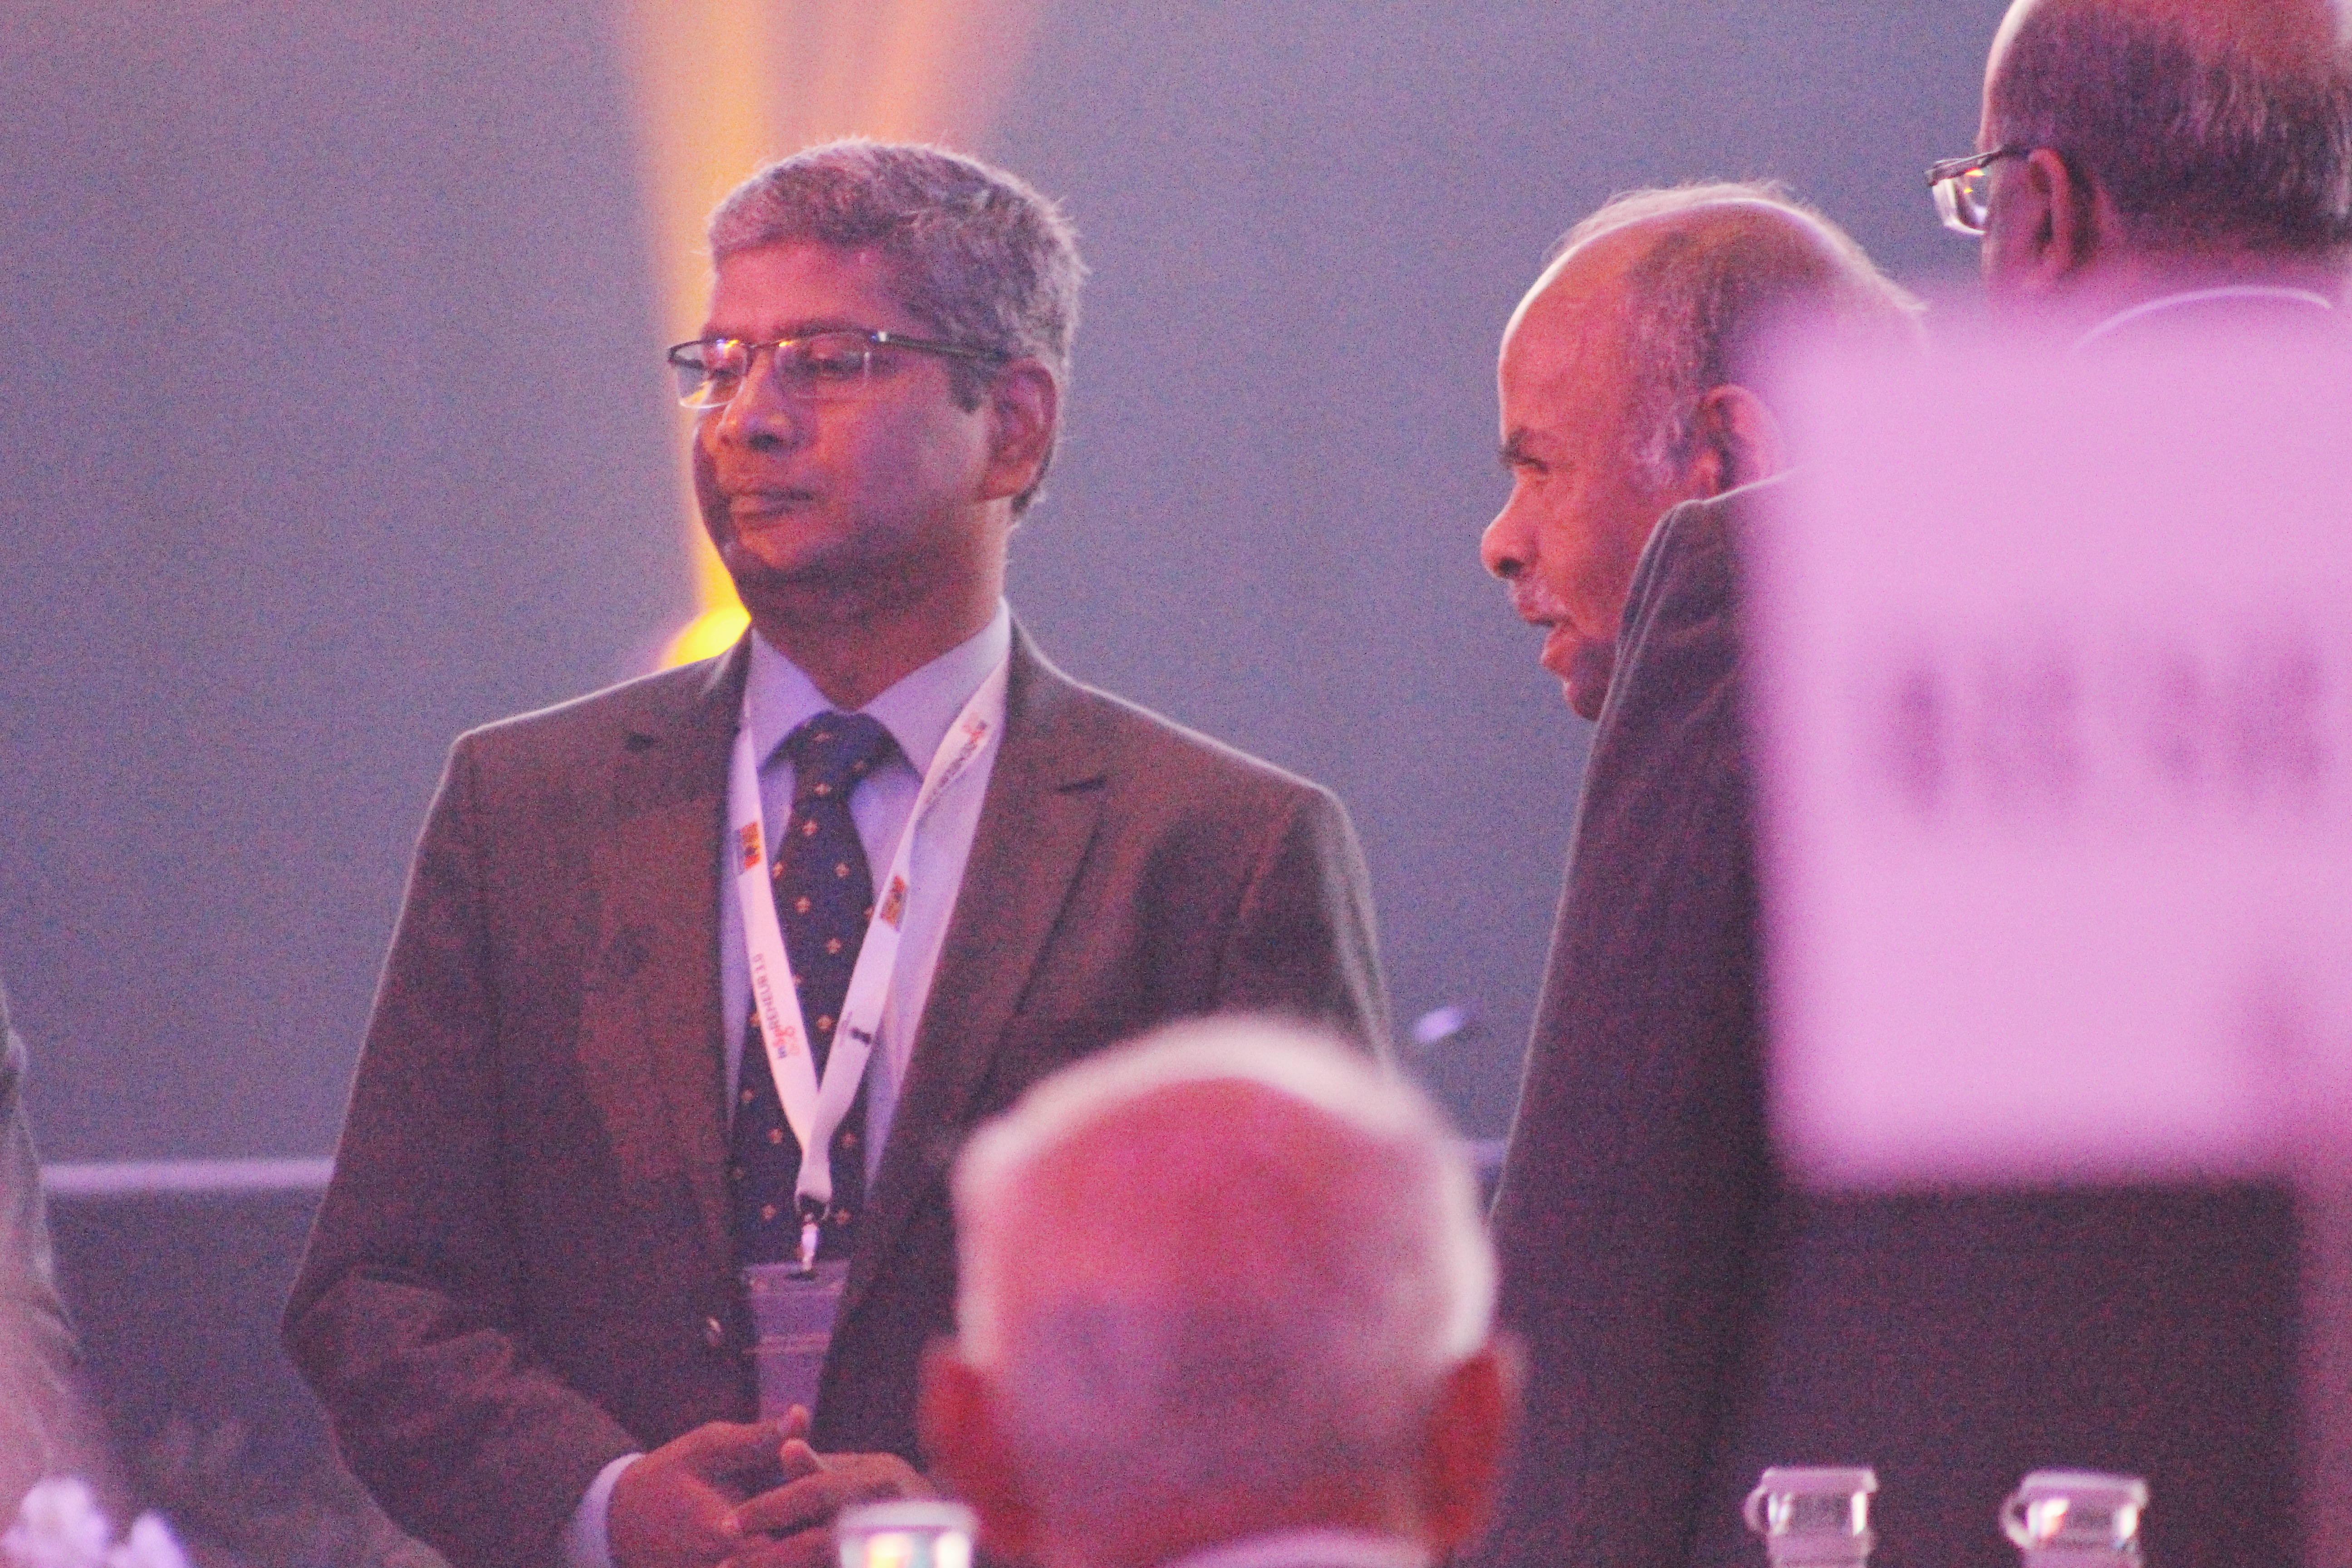 Kishore Kumar Poludasu, Country Head of SBI in Singapore, seen at the summit. Photo: Connected to India